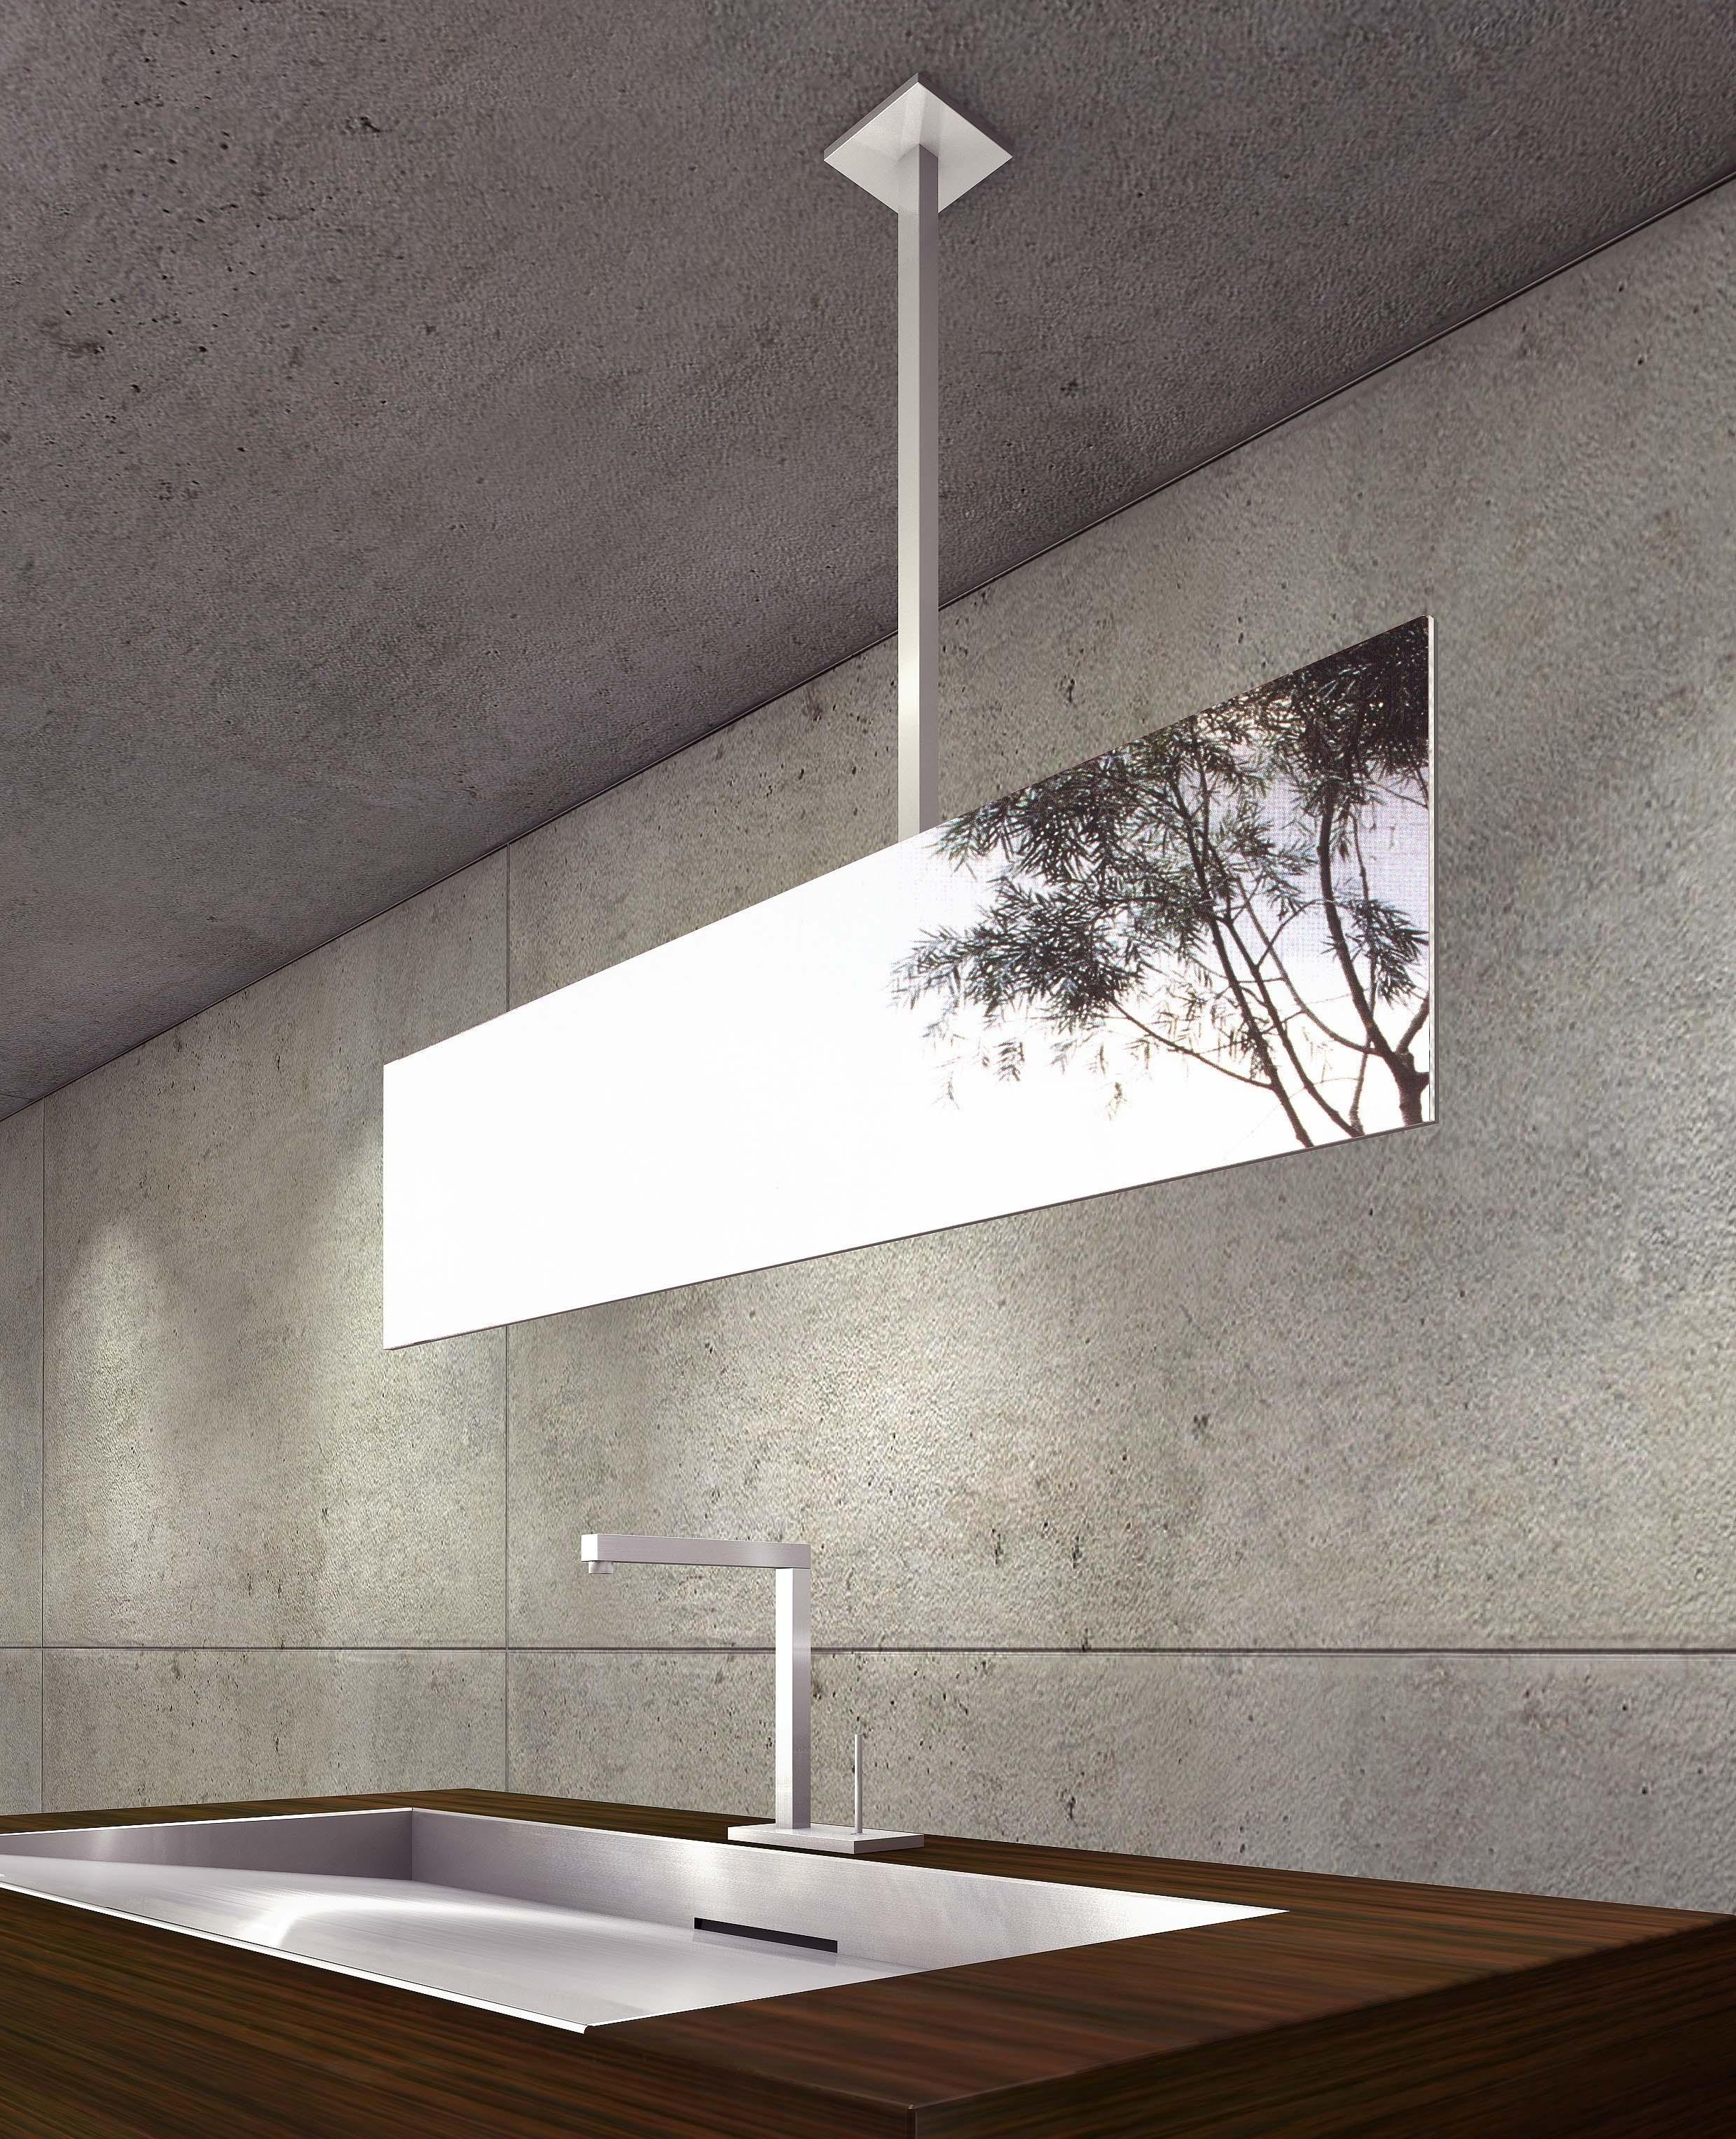 Ceiling Mounted Bathroom Mirrors